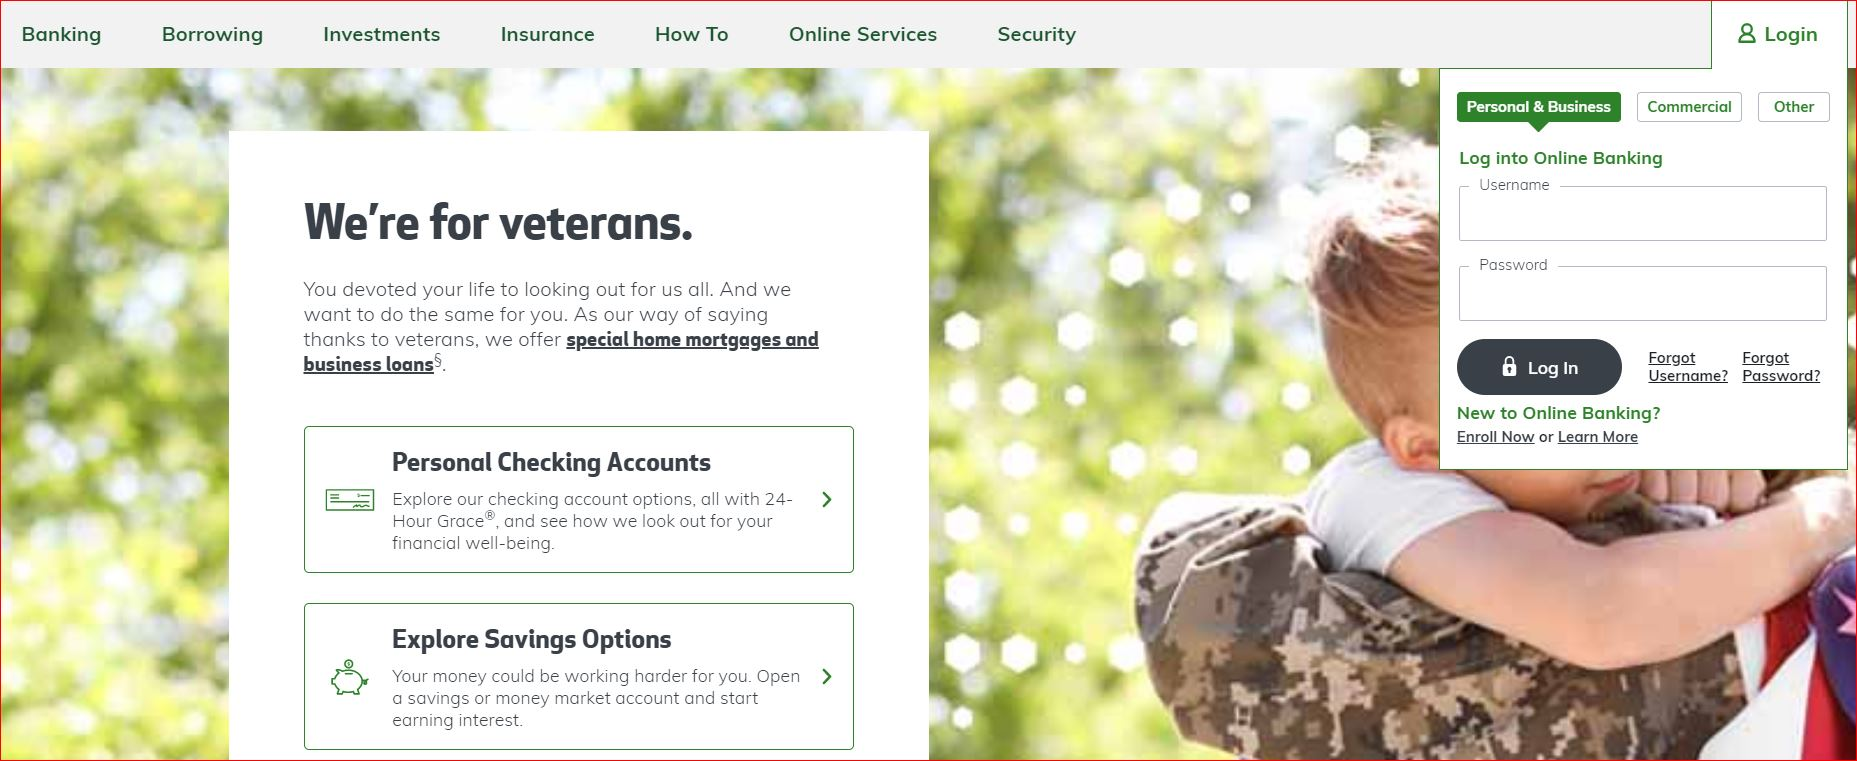 Huntington Bank Online Banking Login And Sign In Process